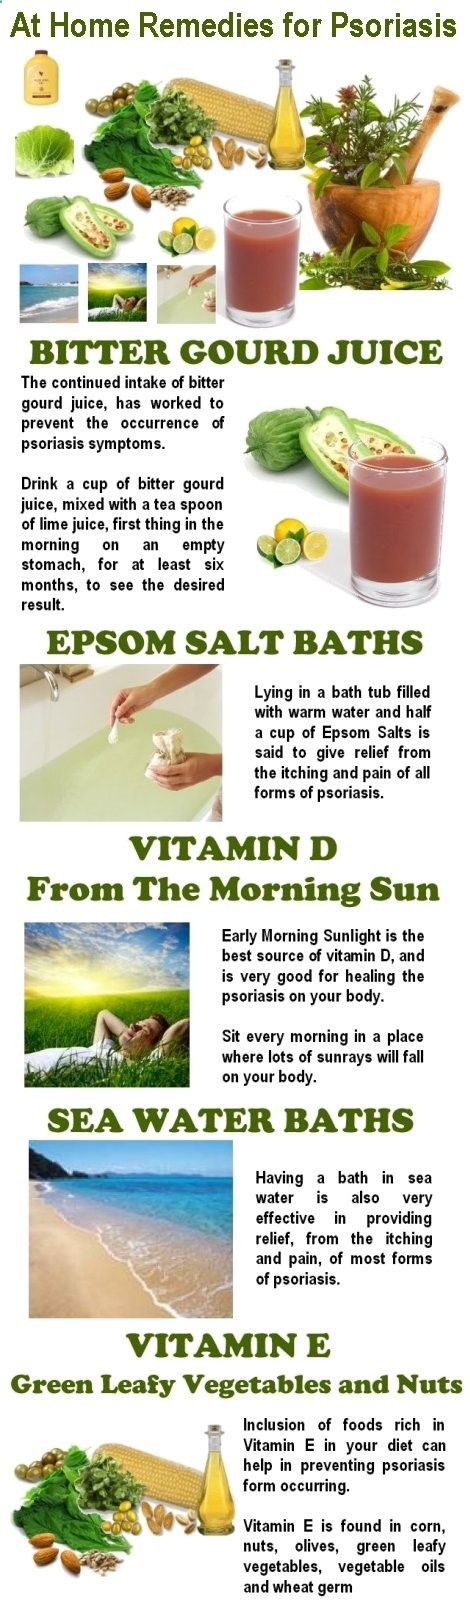 There may be no cure for Psoriasis, but that doesnt mean we cant prevent it from spreading and effecting our lives. At Home Remedies for Psoriasis - Recognized at home remedies for psoriasis can be said to be the only true natural treatment for psoriasis